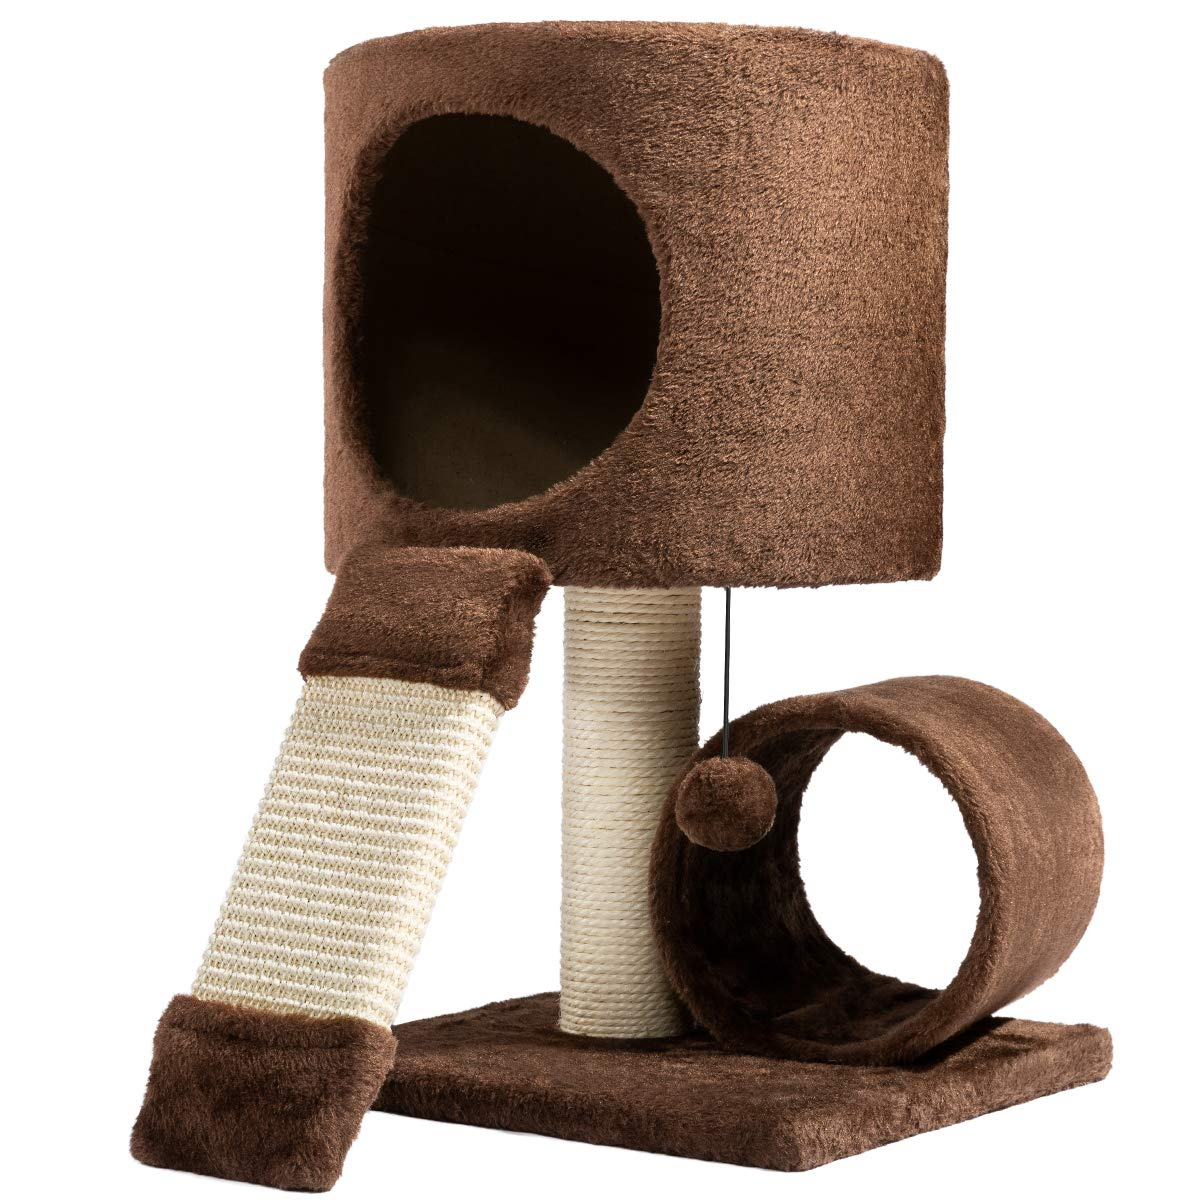 Hollypet Cat Activity Tree Bed Scratching Post Toys Pet Furniture Scratcher Play House Condo Coffee 21 Inch High by Hollypet